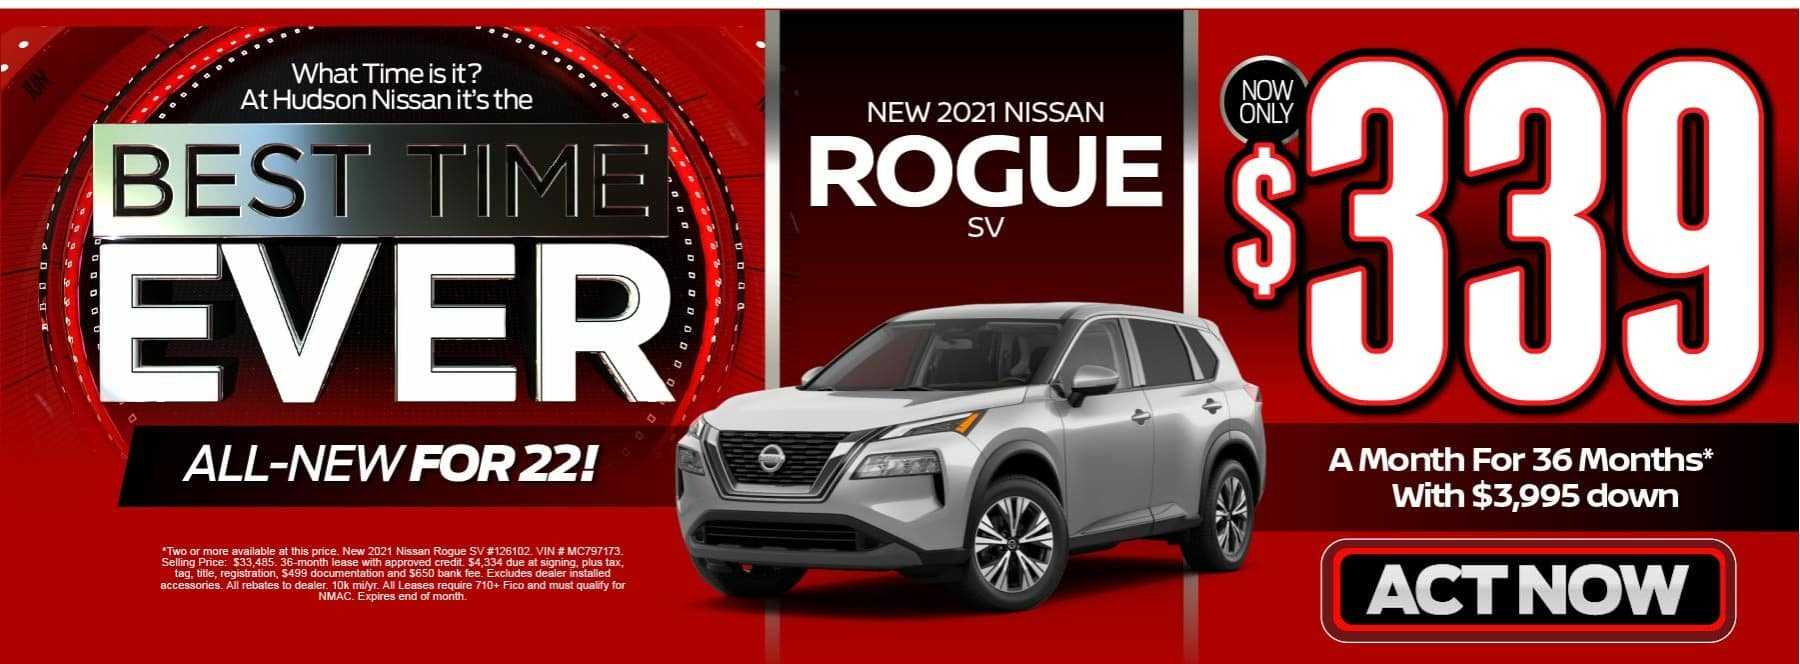 New 2021 Nissan Rogue - Now only $339 a month - Act Now